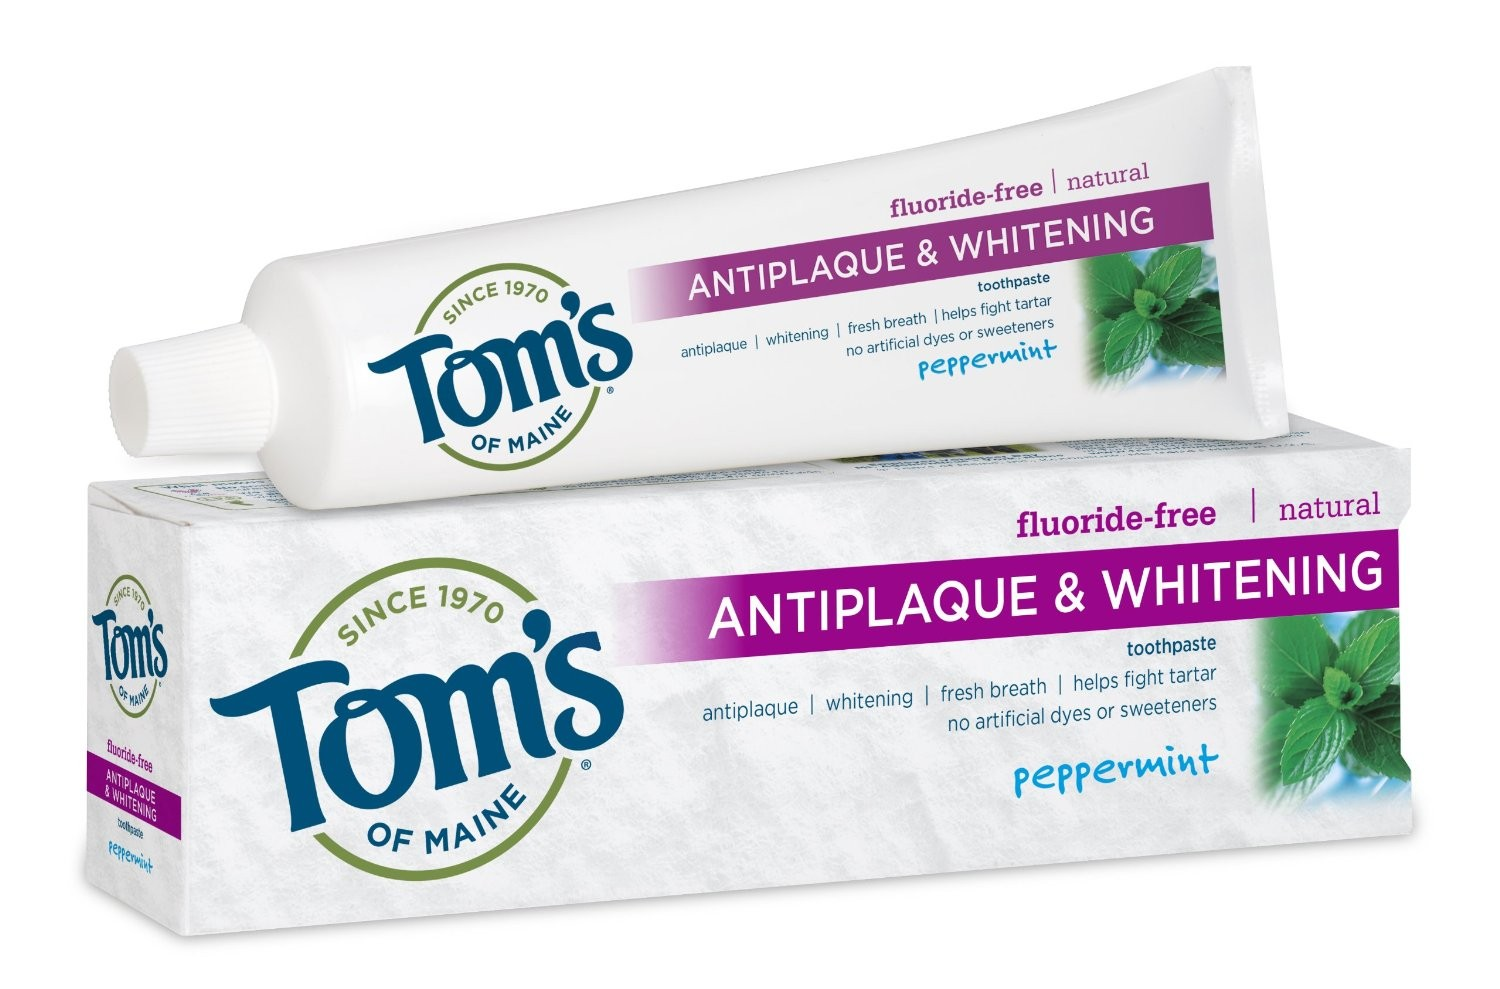 Tom's of Maine Fluoride-Free Antiplaque & Whitening toothpaste and box are pictured.